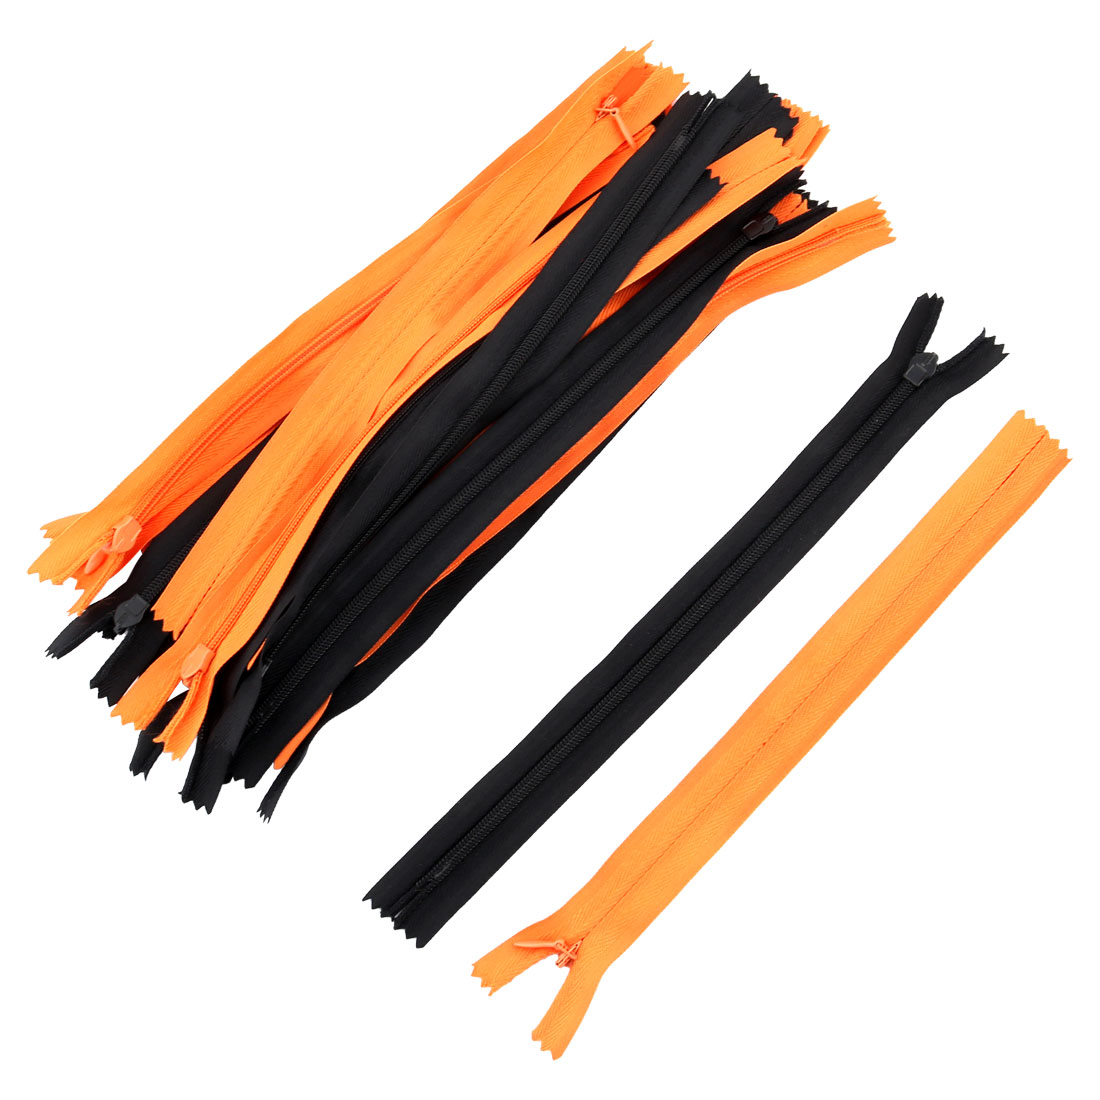 Tailor Sewing Nylon Invisible Smooth Zippers Mix Size Black Orange 22pcs